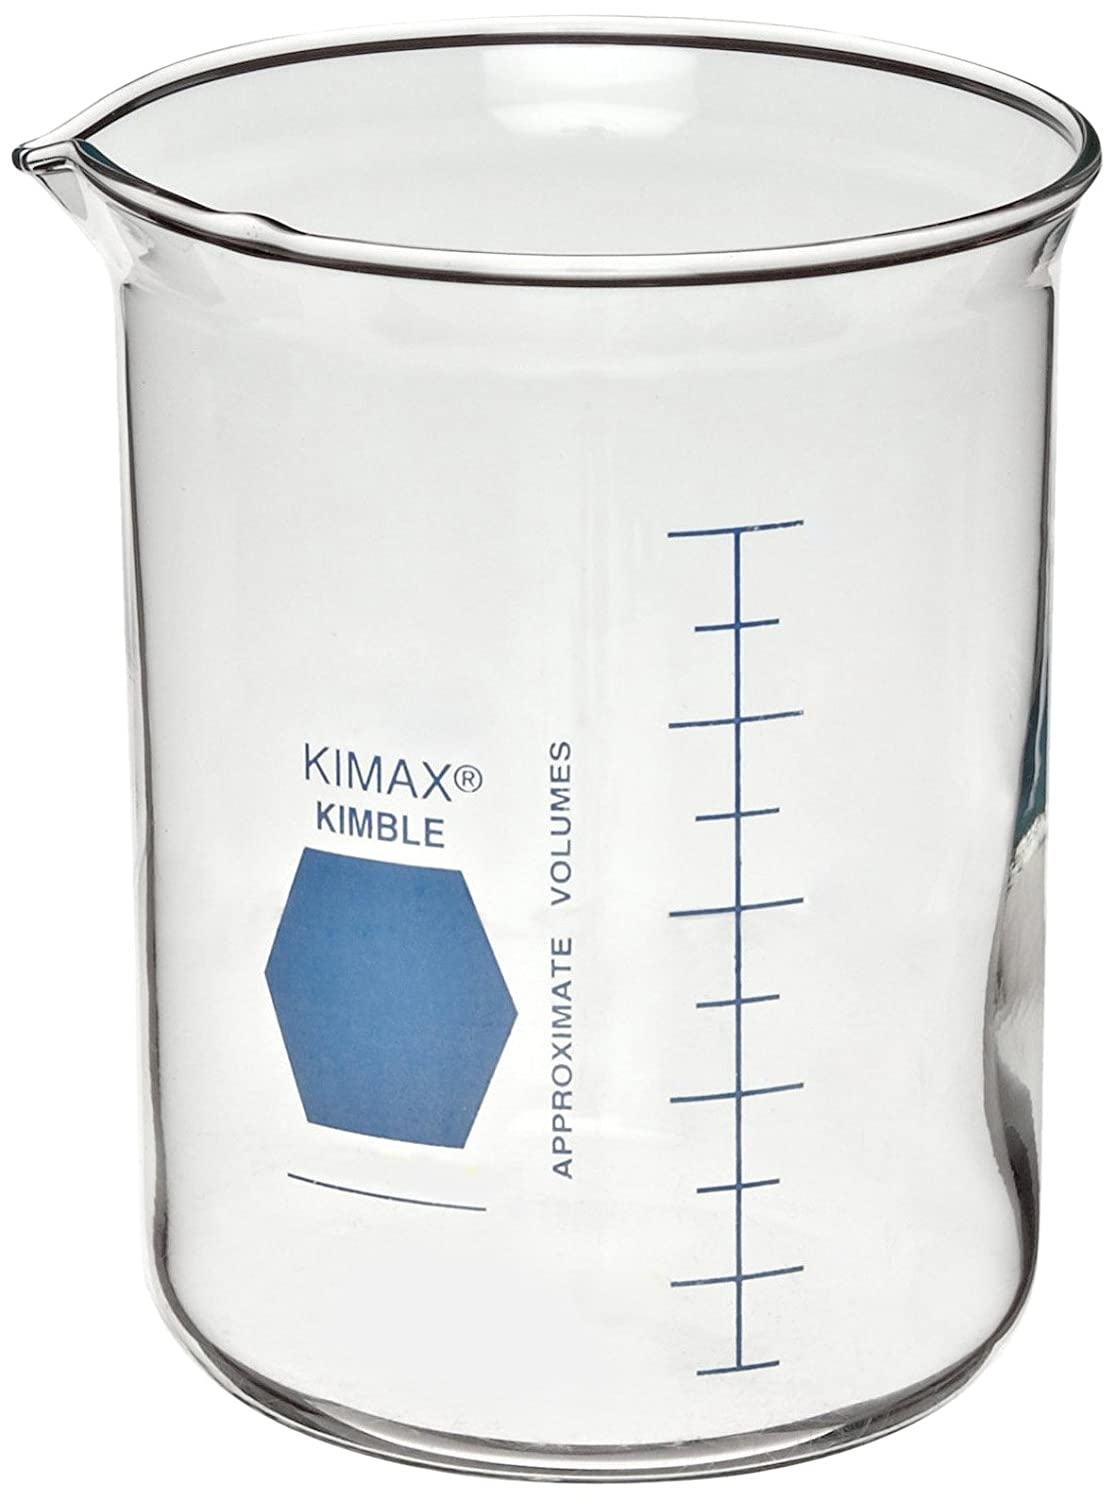 Kimax KG-33 borosilicate glass Griffin low-form beaker with blue double-scale graduations Kimble Chase